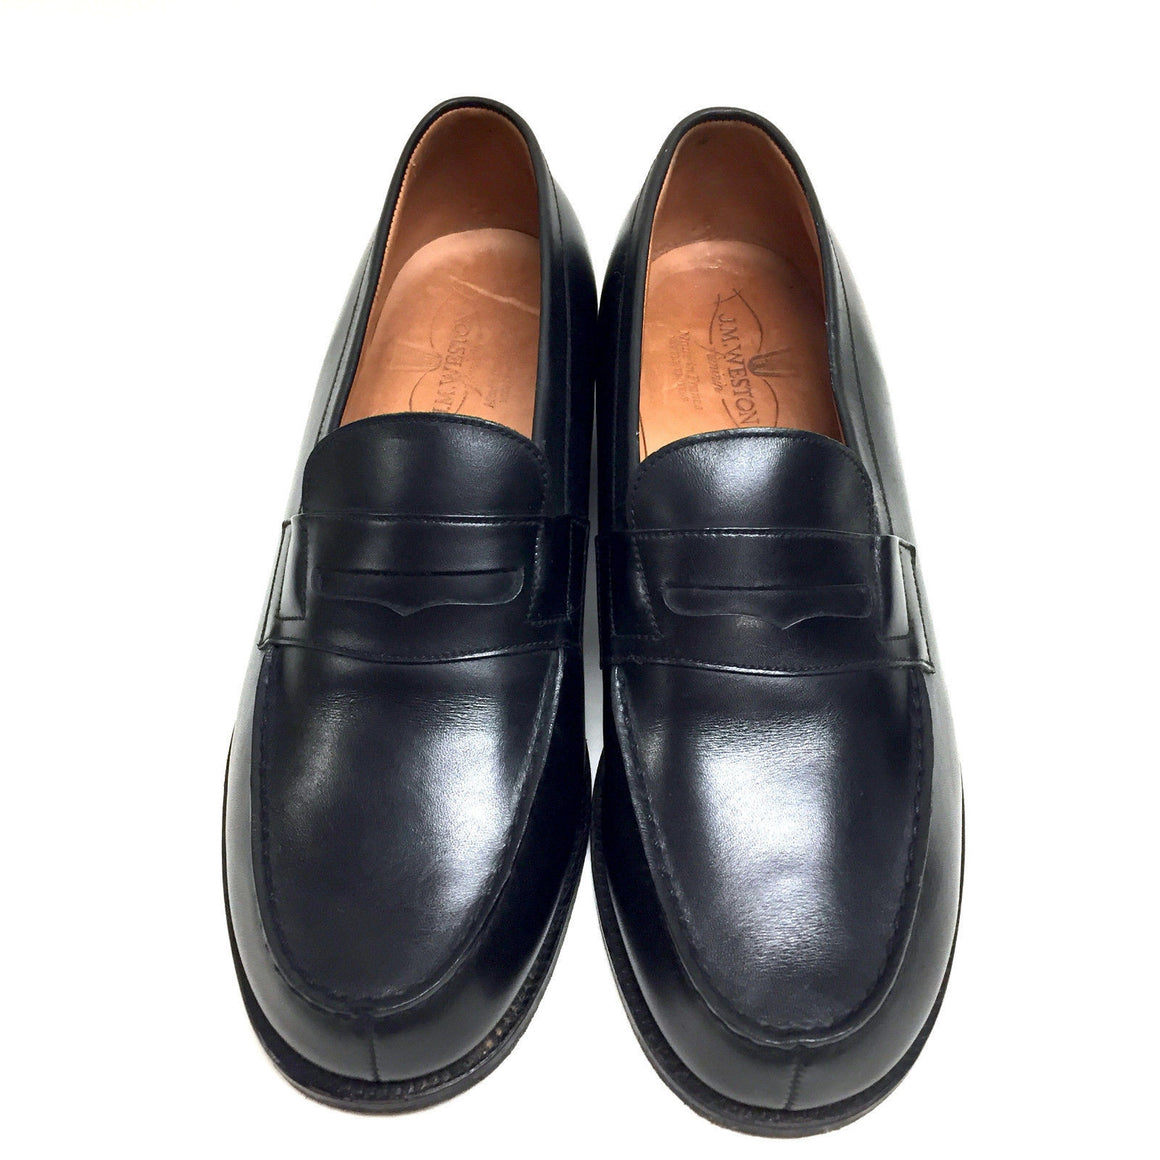 bisbiz.com J. M. WESTON  Black Leather Classic Penny Loafers  Shoes  Size: EU 5.5E / US 9 - Bis Luxury Resale